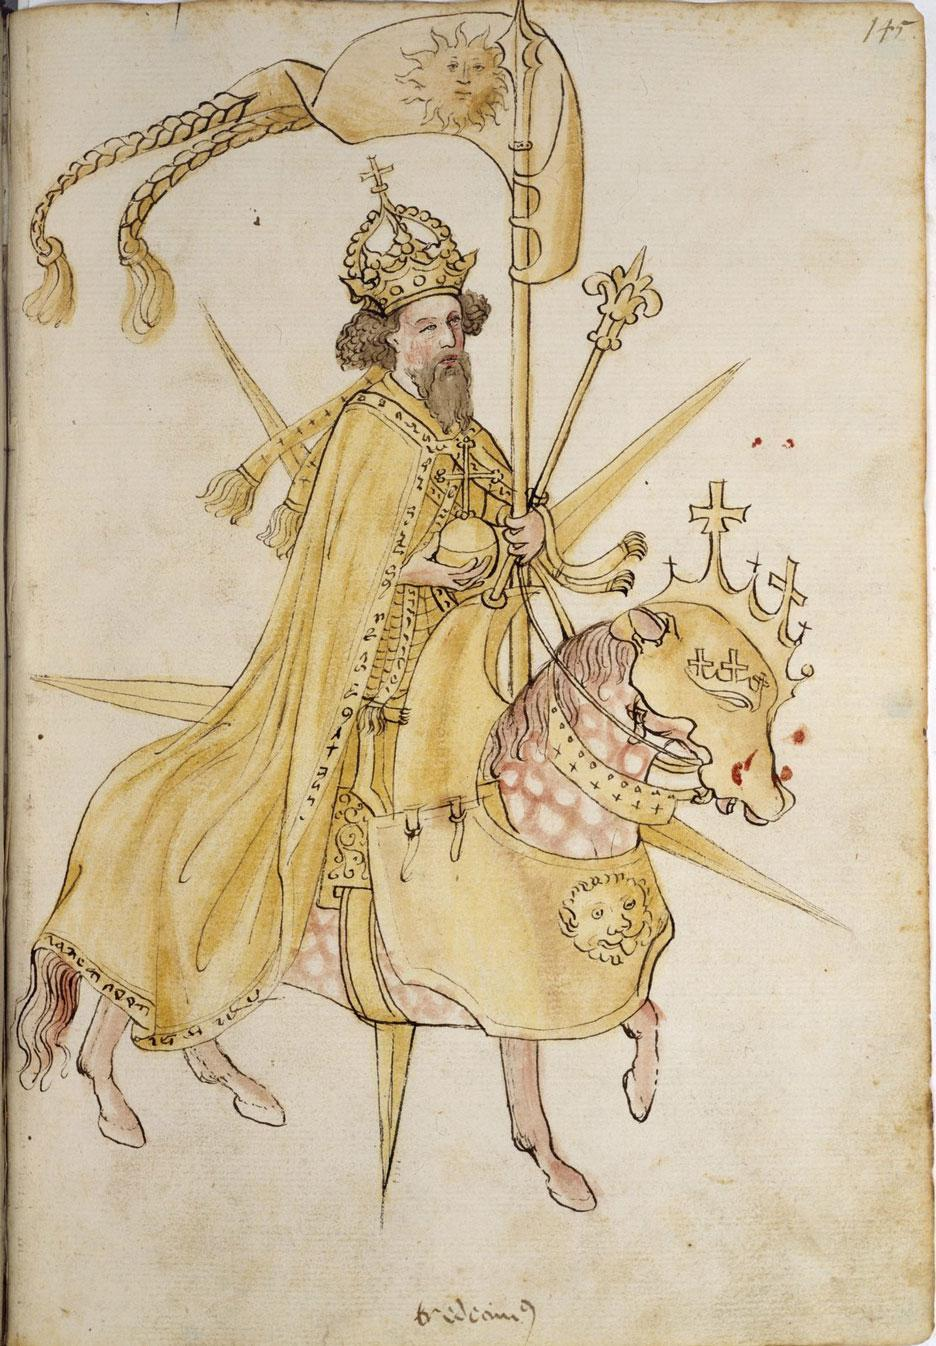 Familiar and unfamiliar depictions of Sigismund of Luxembourg. Lecture by Marek Zágora